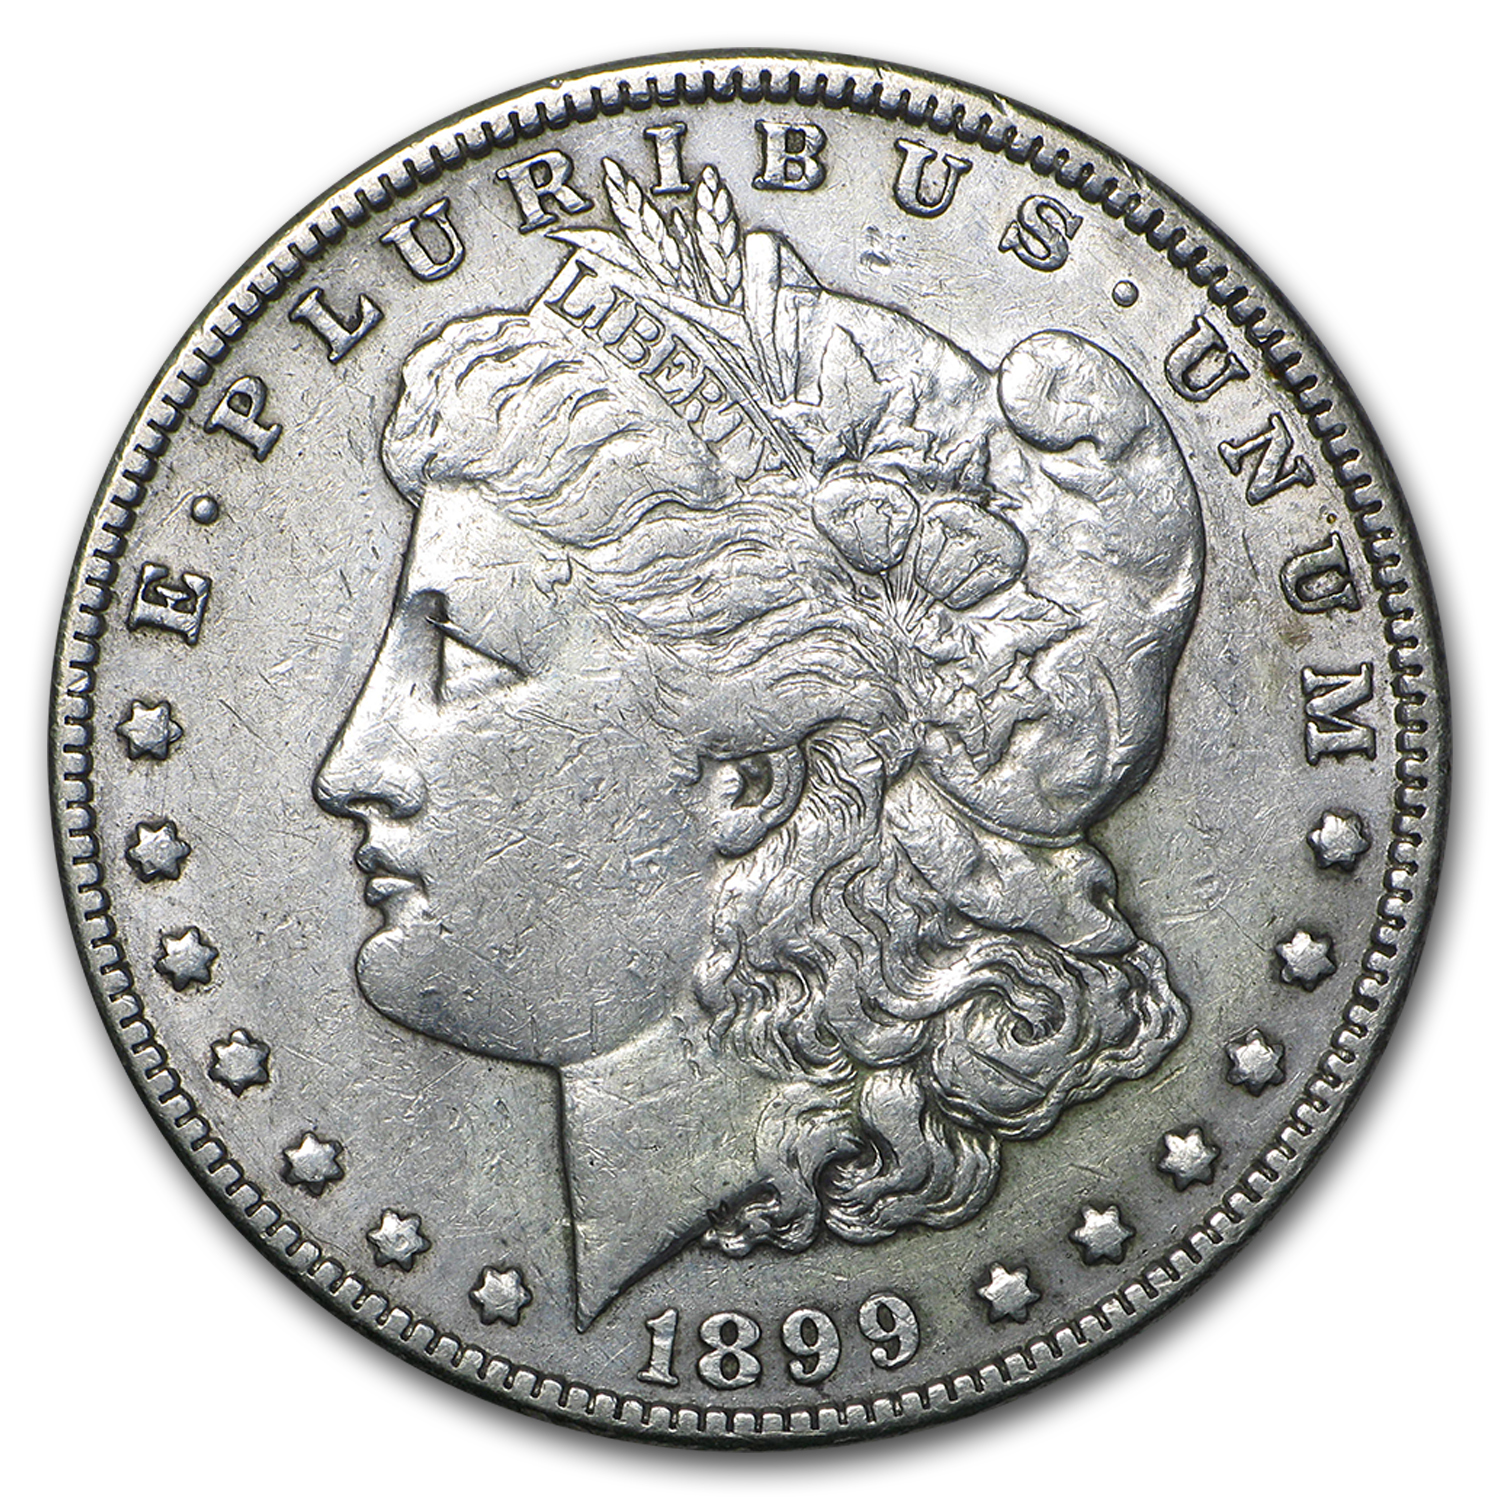 1899 Morgan Dollar - Very Fine